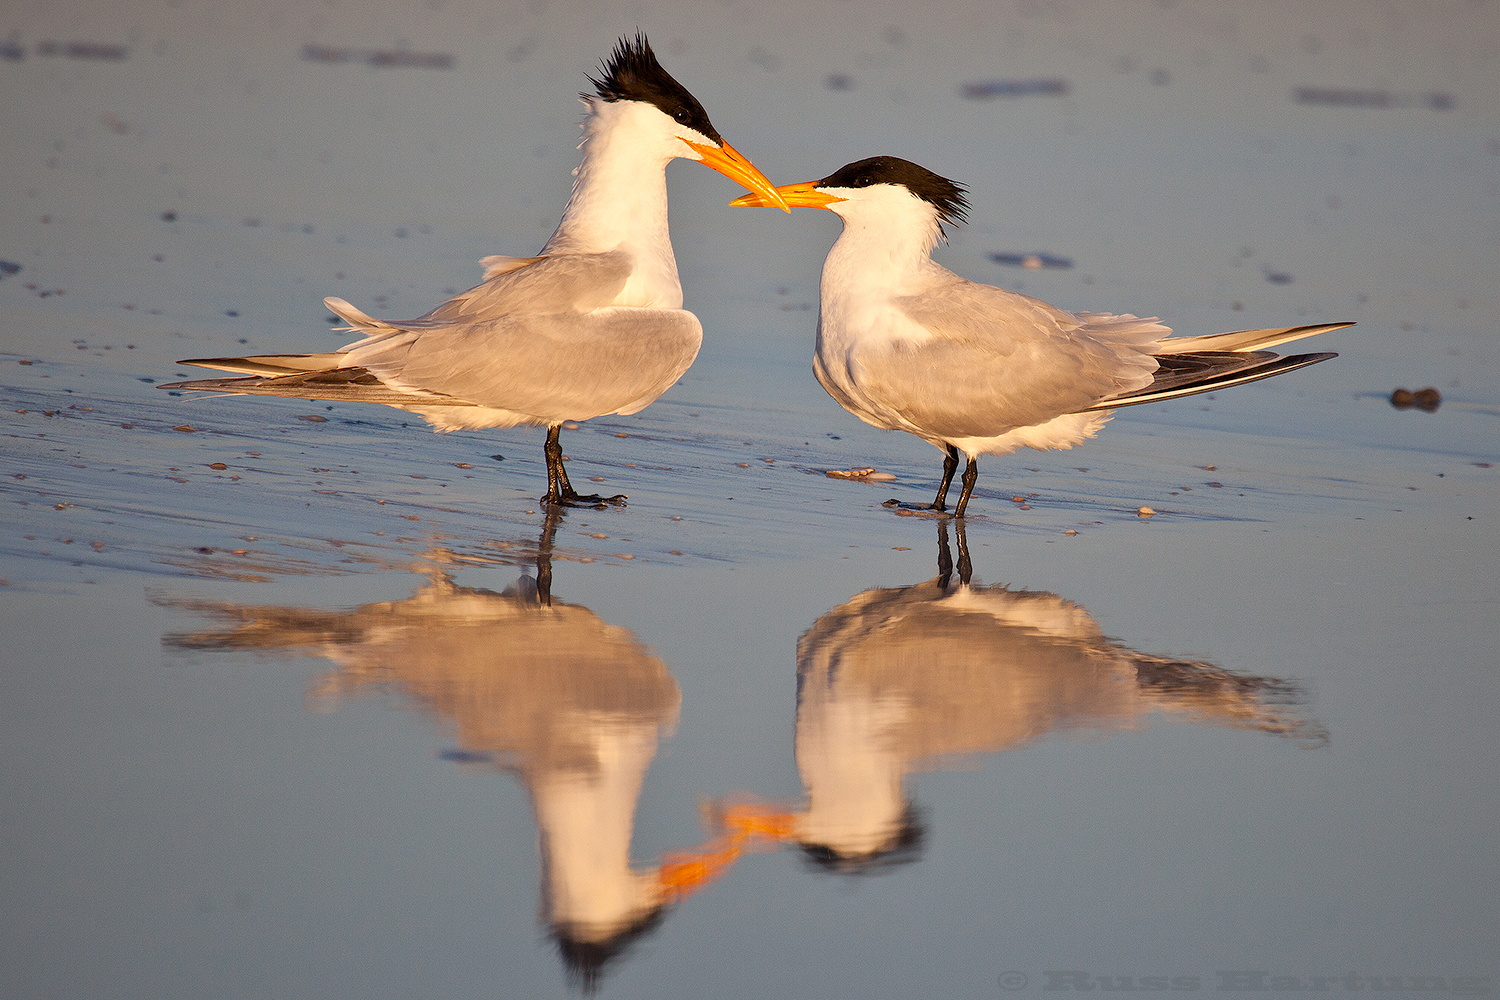 """Royal Tern Couple"" - Juried Selection - Darkroom Gallery ""Love"" Photo Contest"